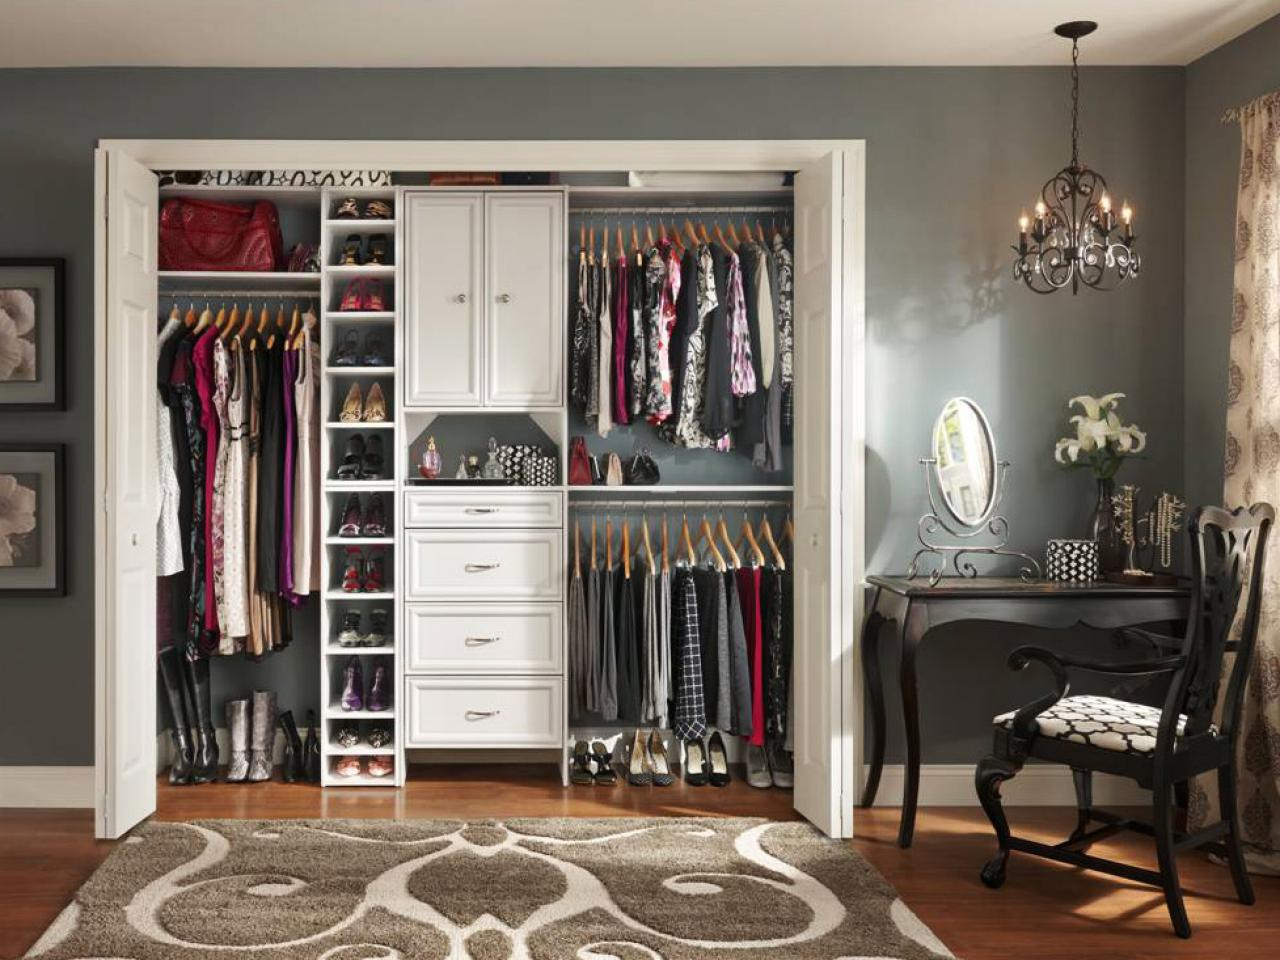 or plus walk closet ideas of design spaces clothes small size diy in storage as layout organization org together organizers and wood organizer full with well for hanging